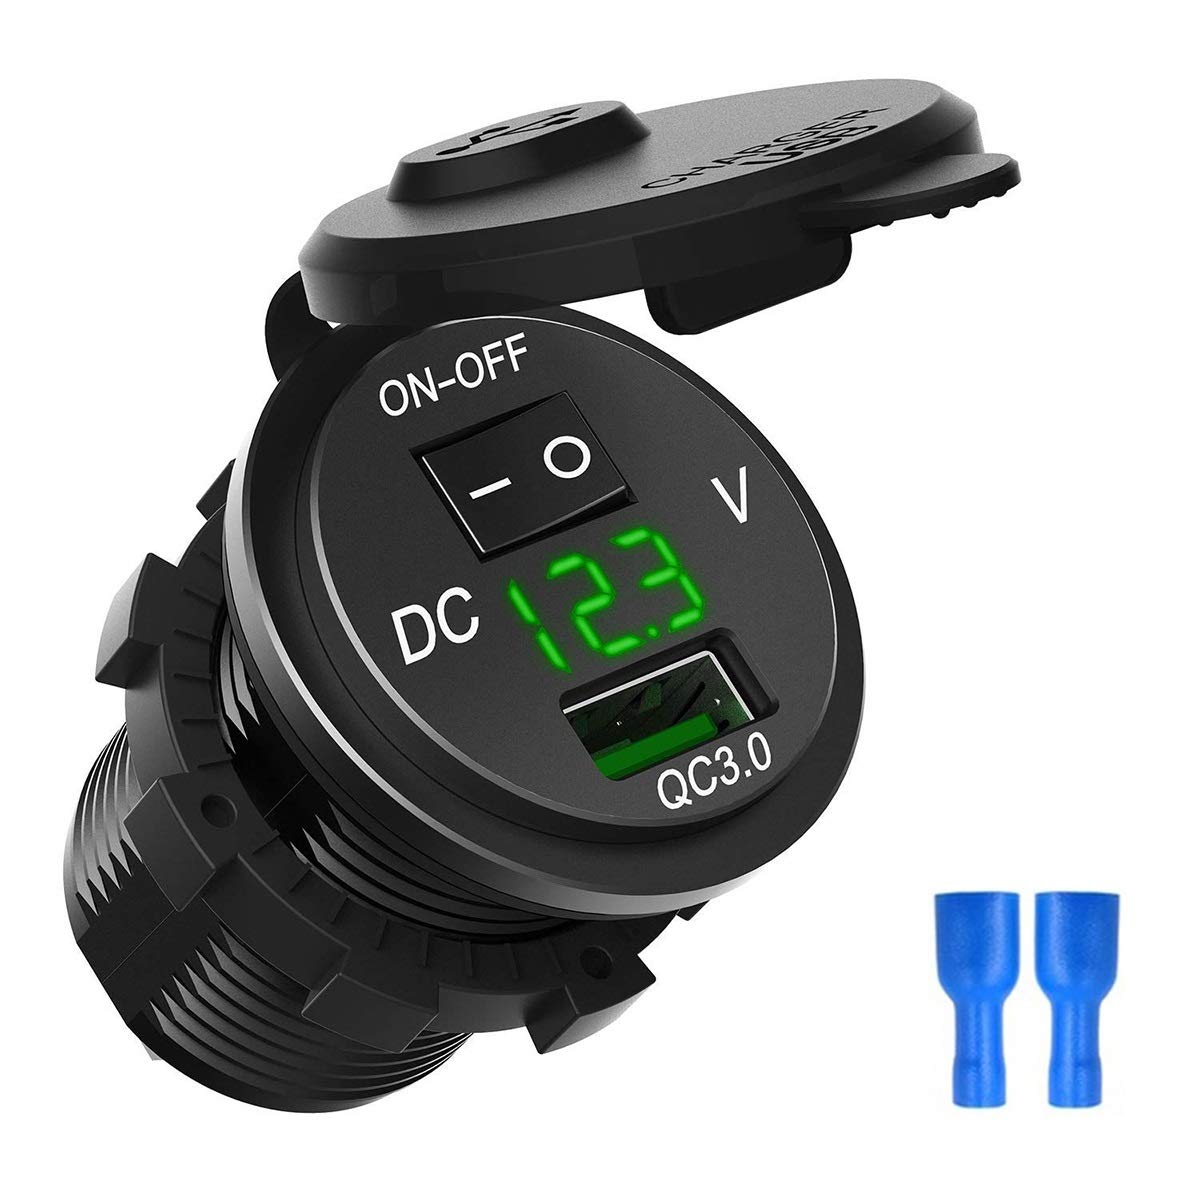 DEALPEAK Quick Charge 3.0 USB Car Charger Socket Digital Display Voltmeter USB Charger Socket with ON-Off Switch for Car Marine ATV Motorcycle Color : Green